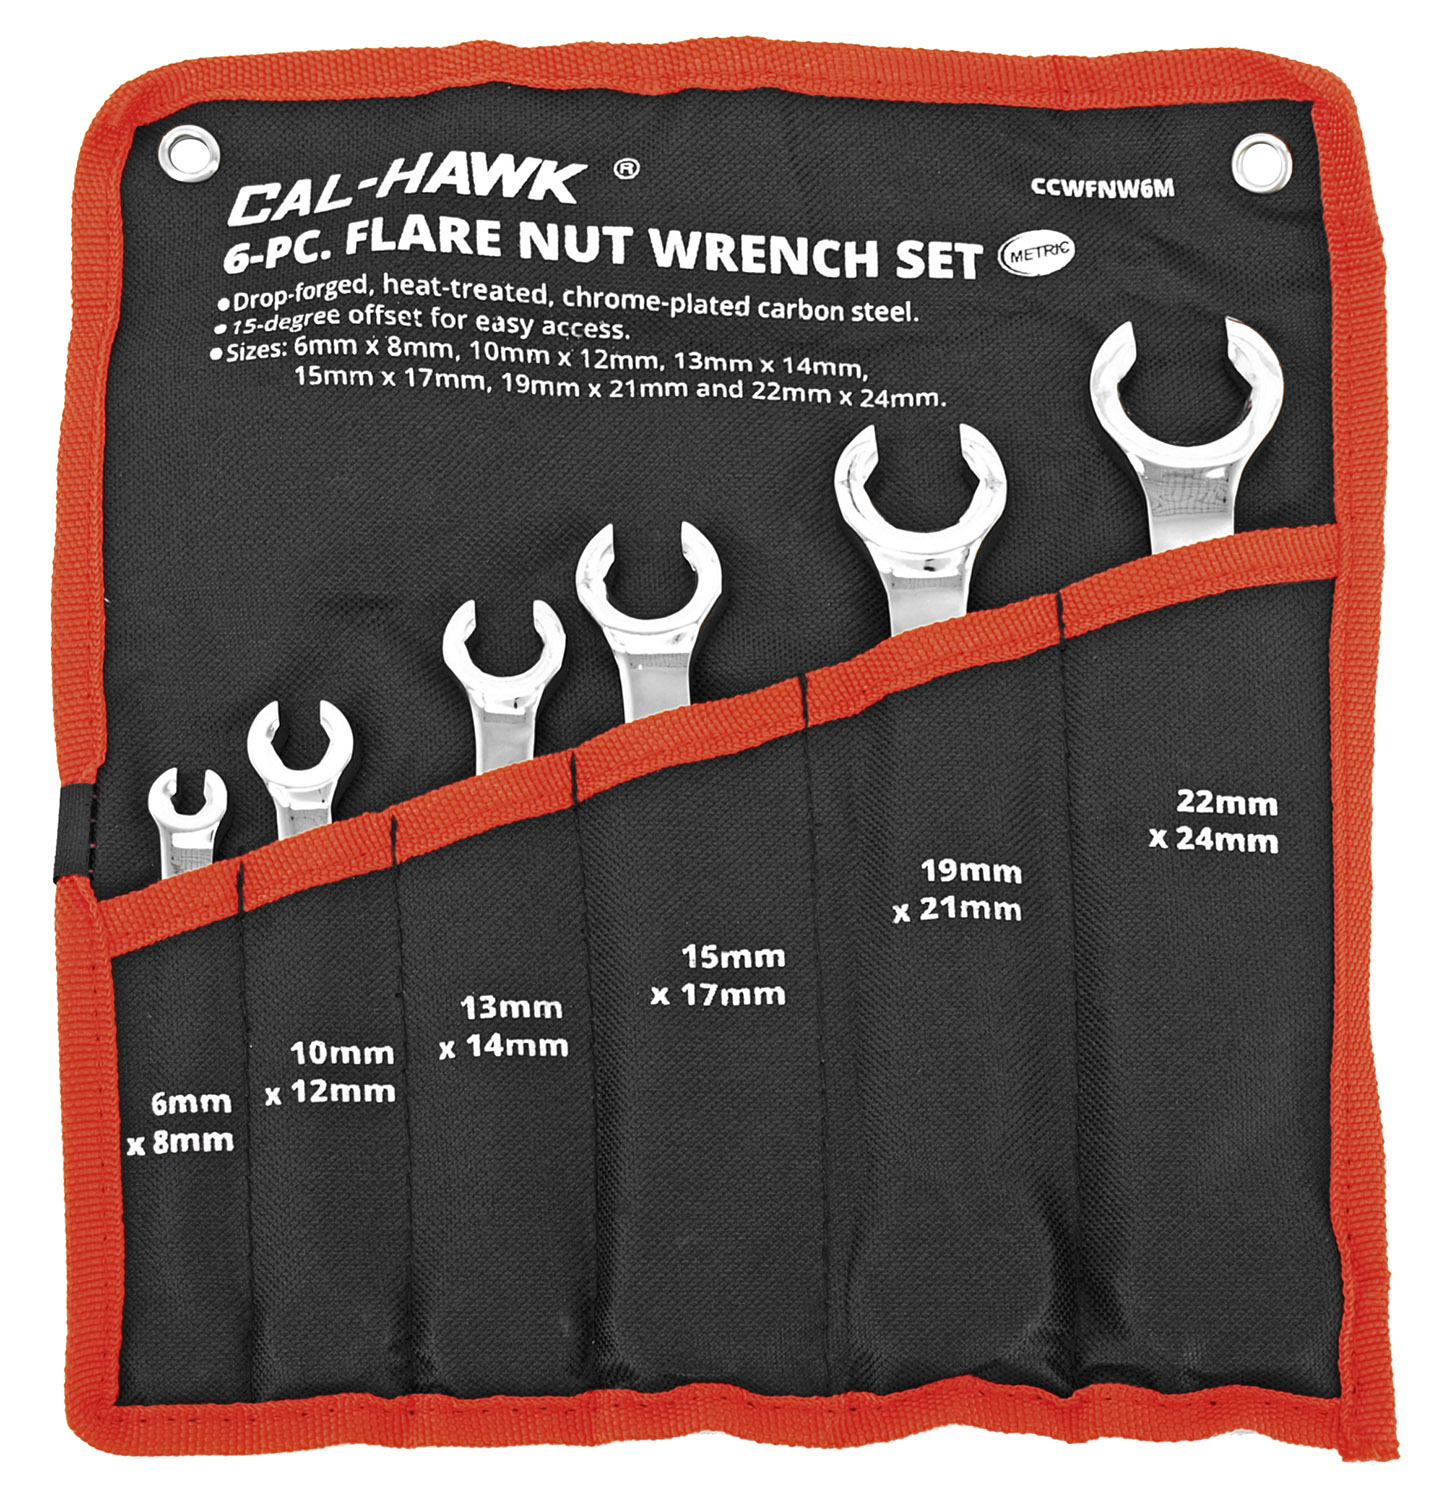 6-pc. Plare Nut Wrench Set - Metric